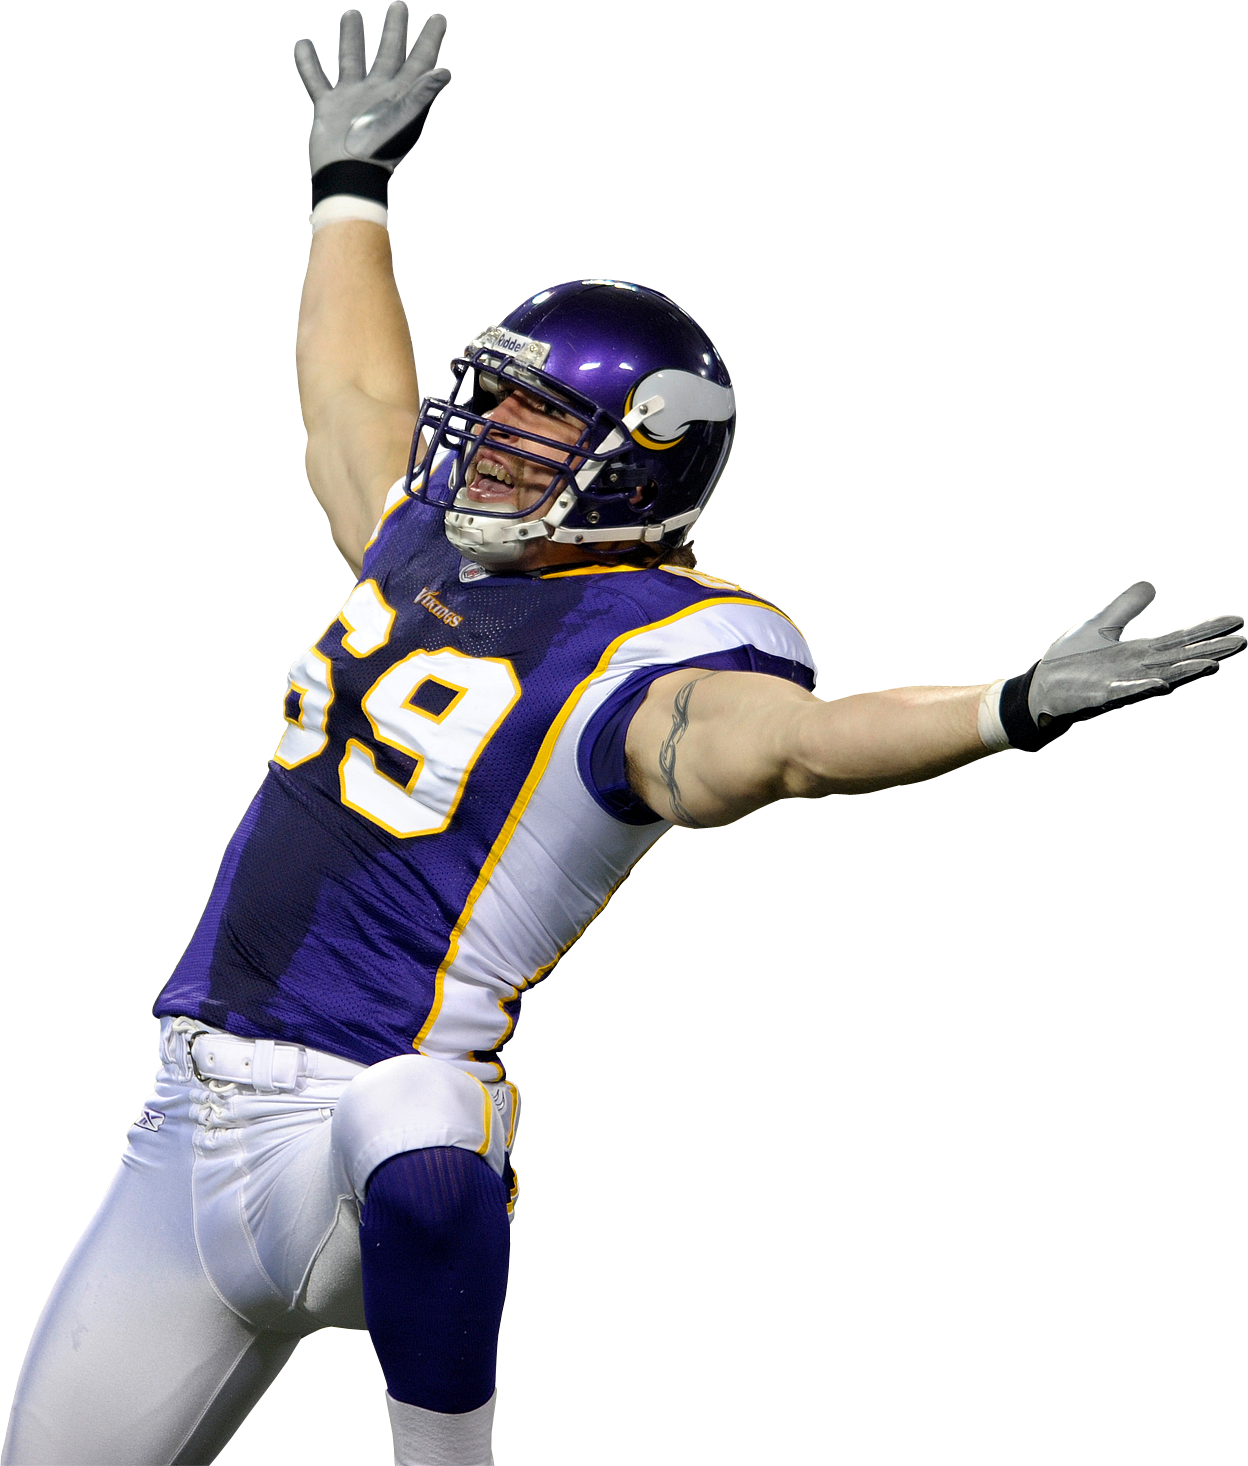 Nfl players png. American football player image